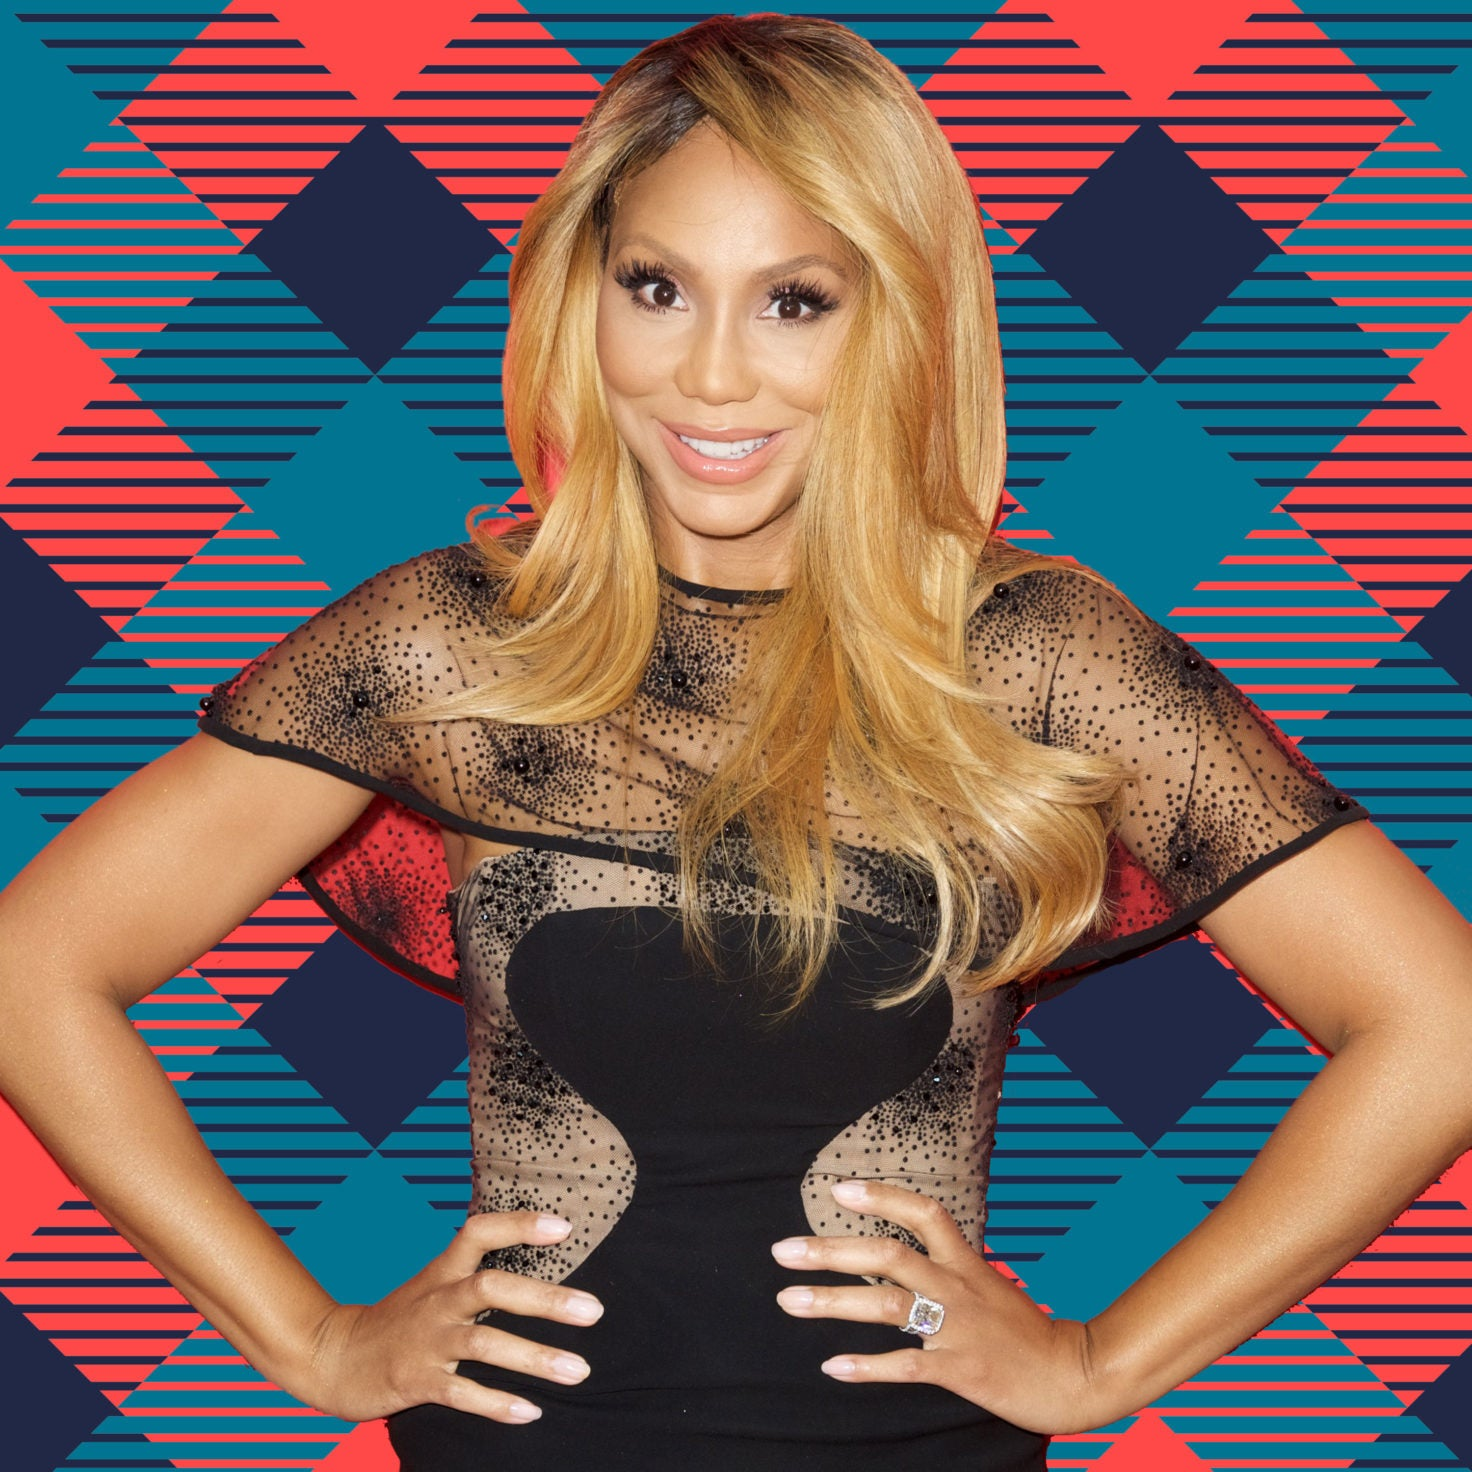 Tamar Braxton Shows Off Her Tiny Ponytail And Fans Cannot Stop Laughing